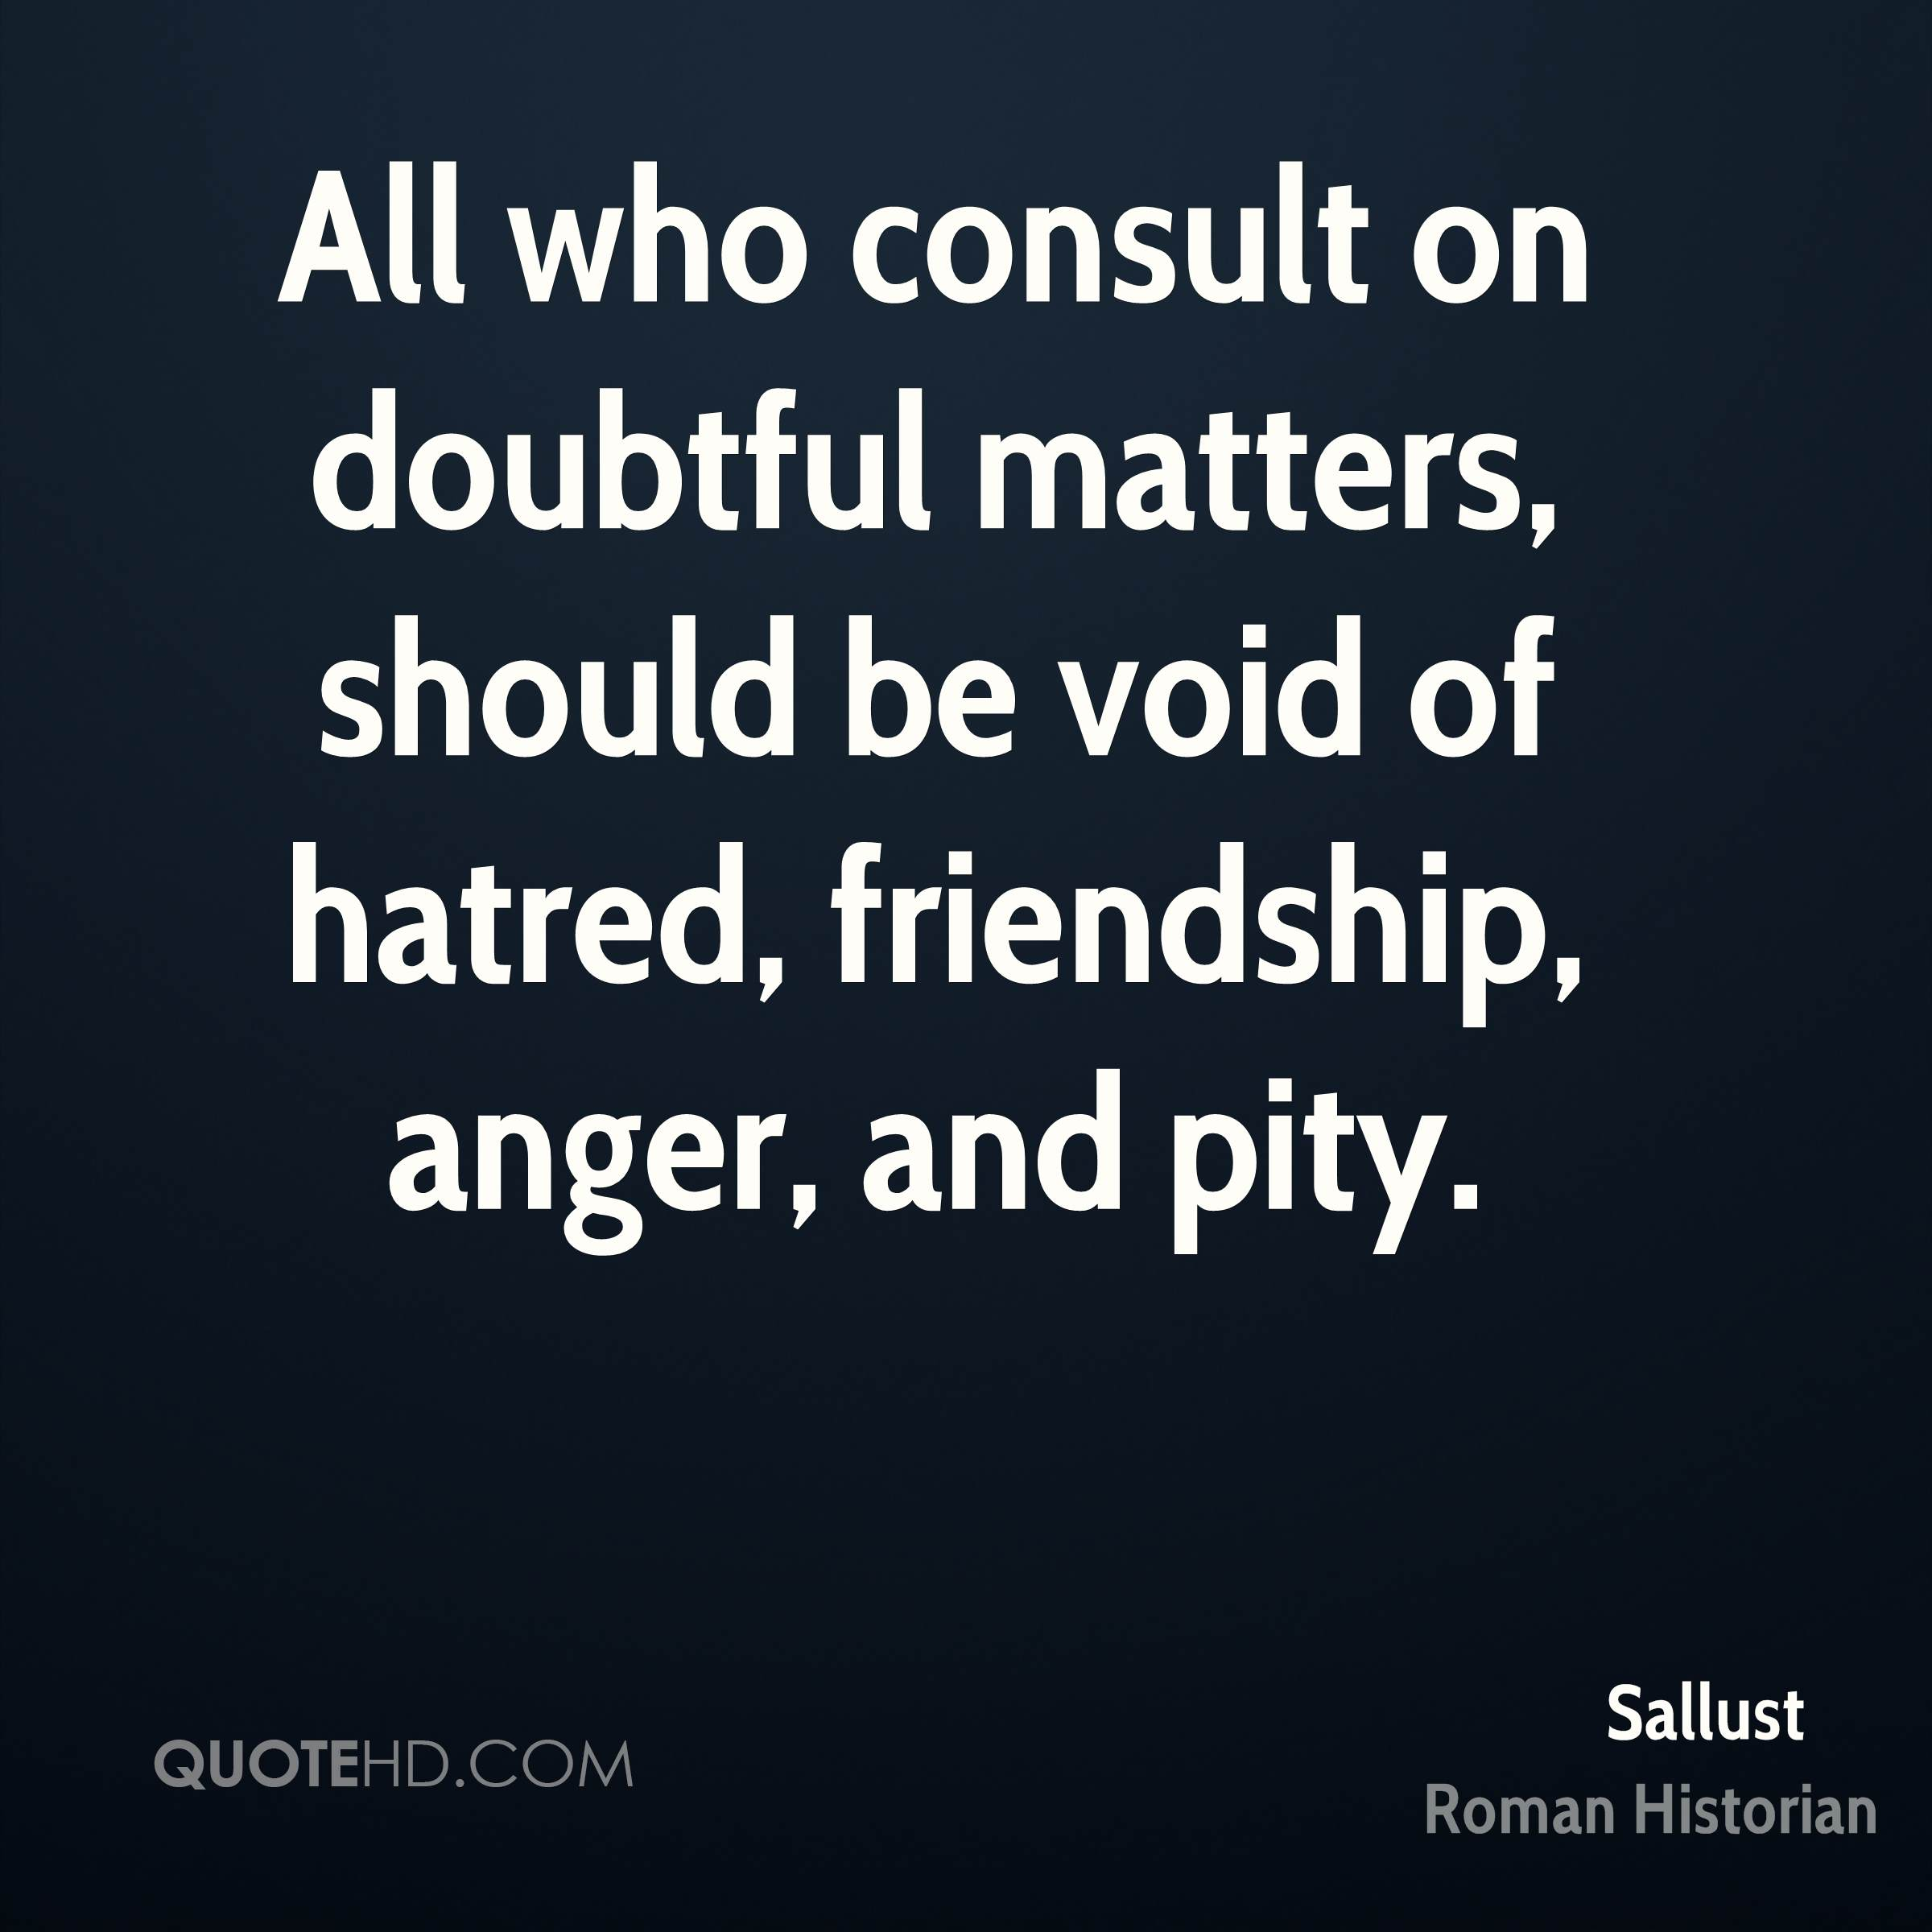 All who consult on doubtful matters, should be void of hatred, friendship, anger, and pity.